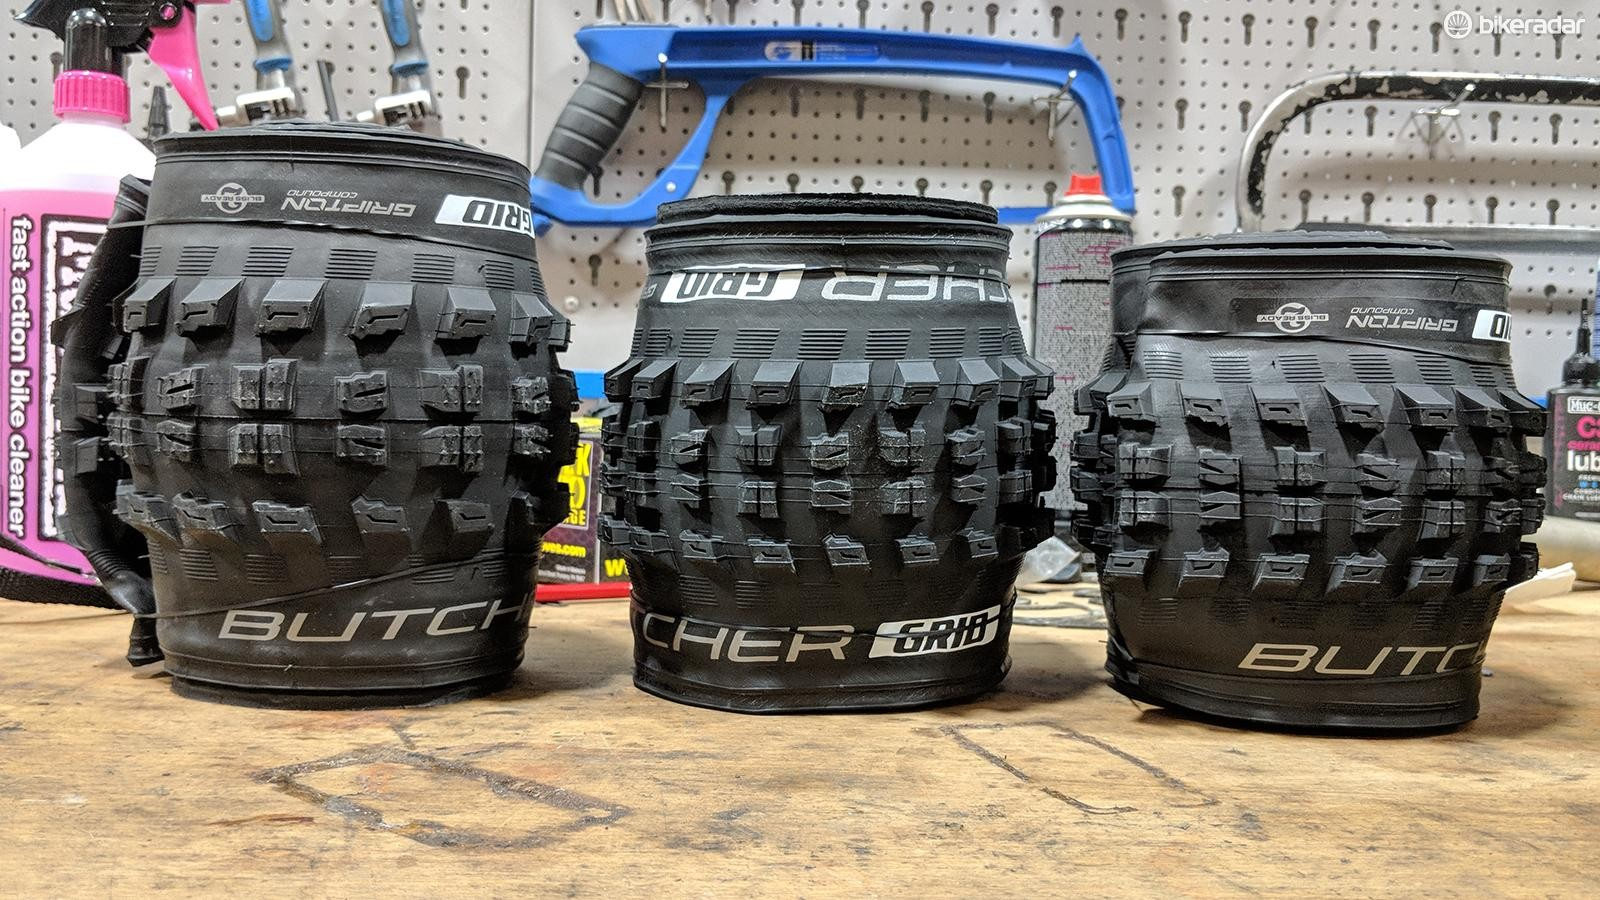 """The tyres on test: Specialized's Butcher Grid in 2.3"""", 2.6"""" and 2.8"""" sizes"""